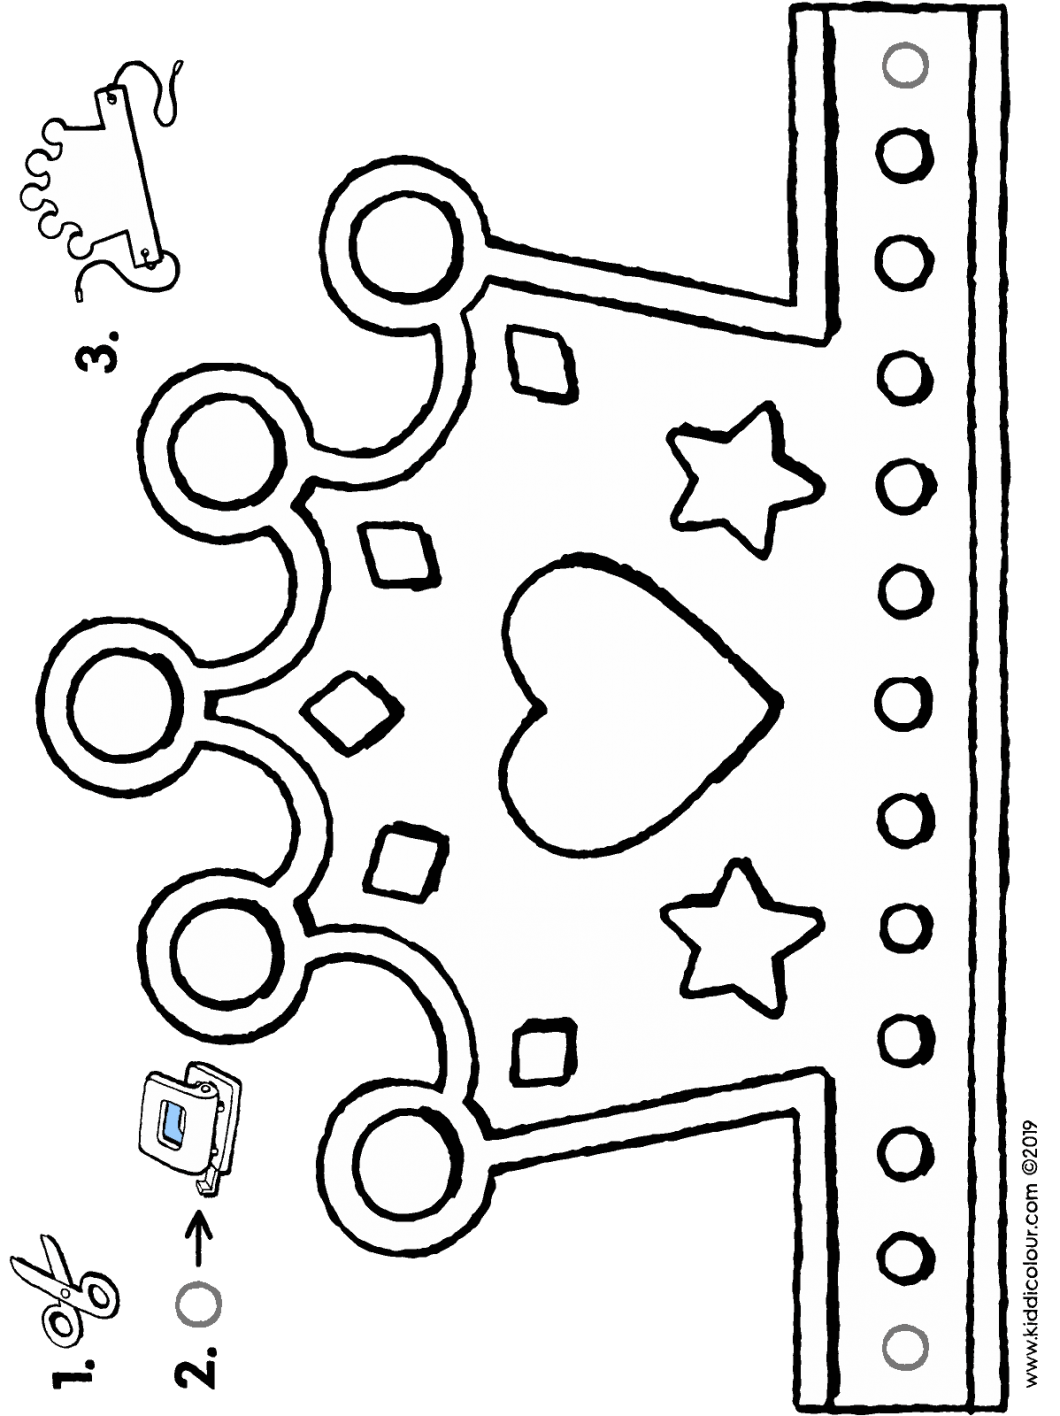 make your own crown colouring page drawing picture 01H